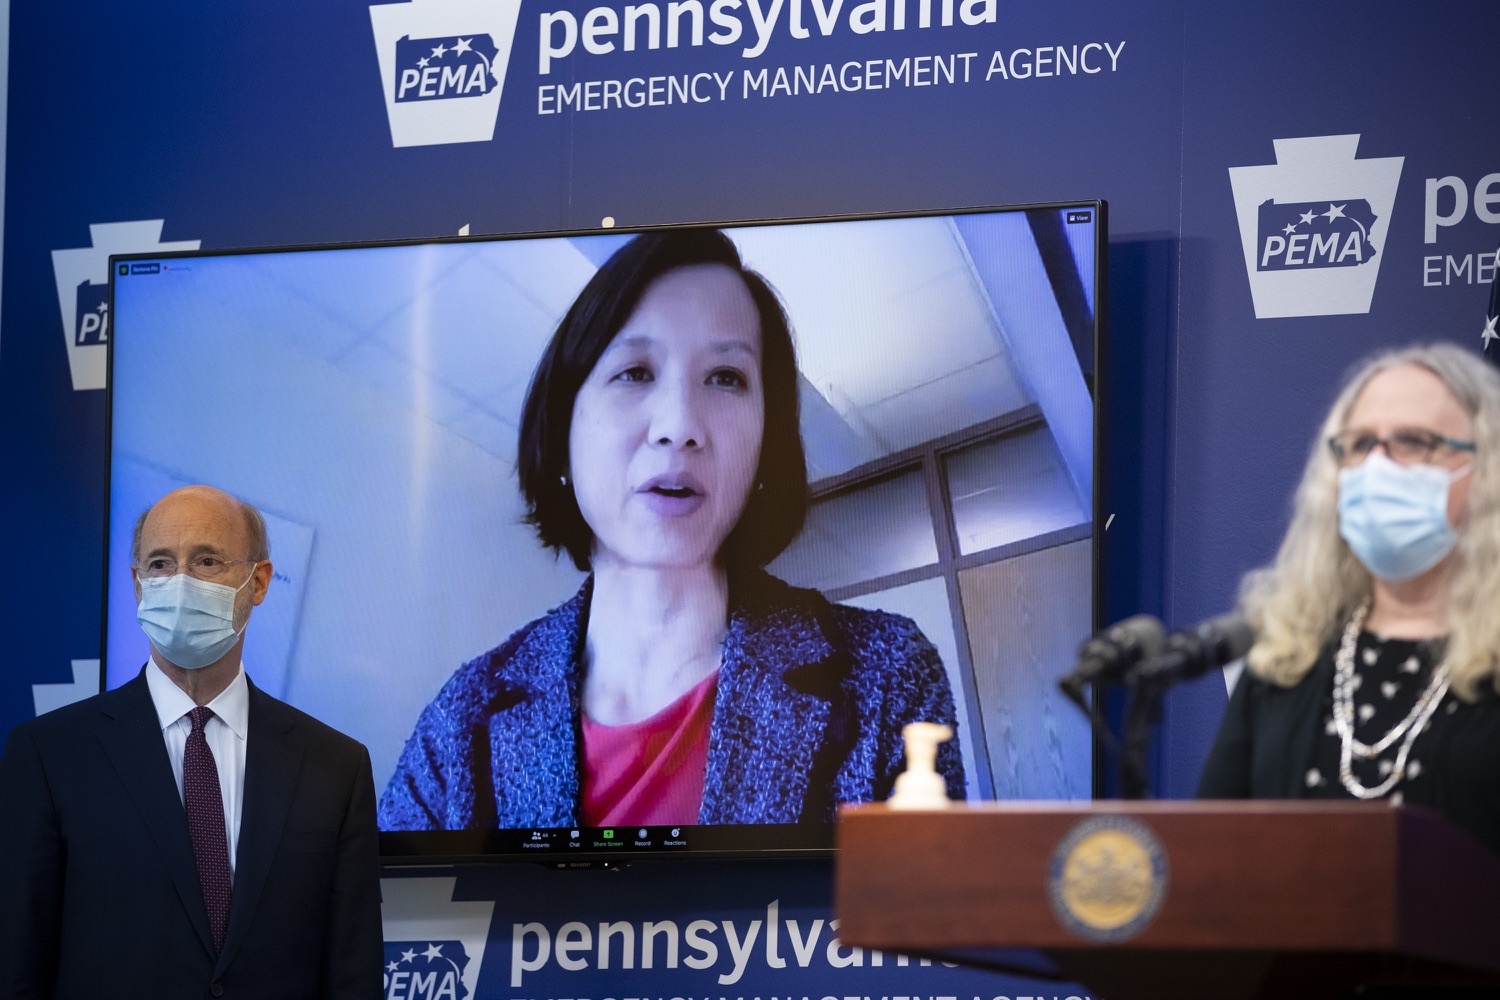 Flanked by Gov. Tom Wolf and Health Secretary Dr. Rachel Levine, Dr. Cynthia Chuang of Penn State Hershey Medical Center speaks via video link during an online state news briefing on Tuesday, Jan. 12, 2021.